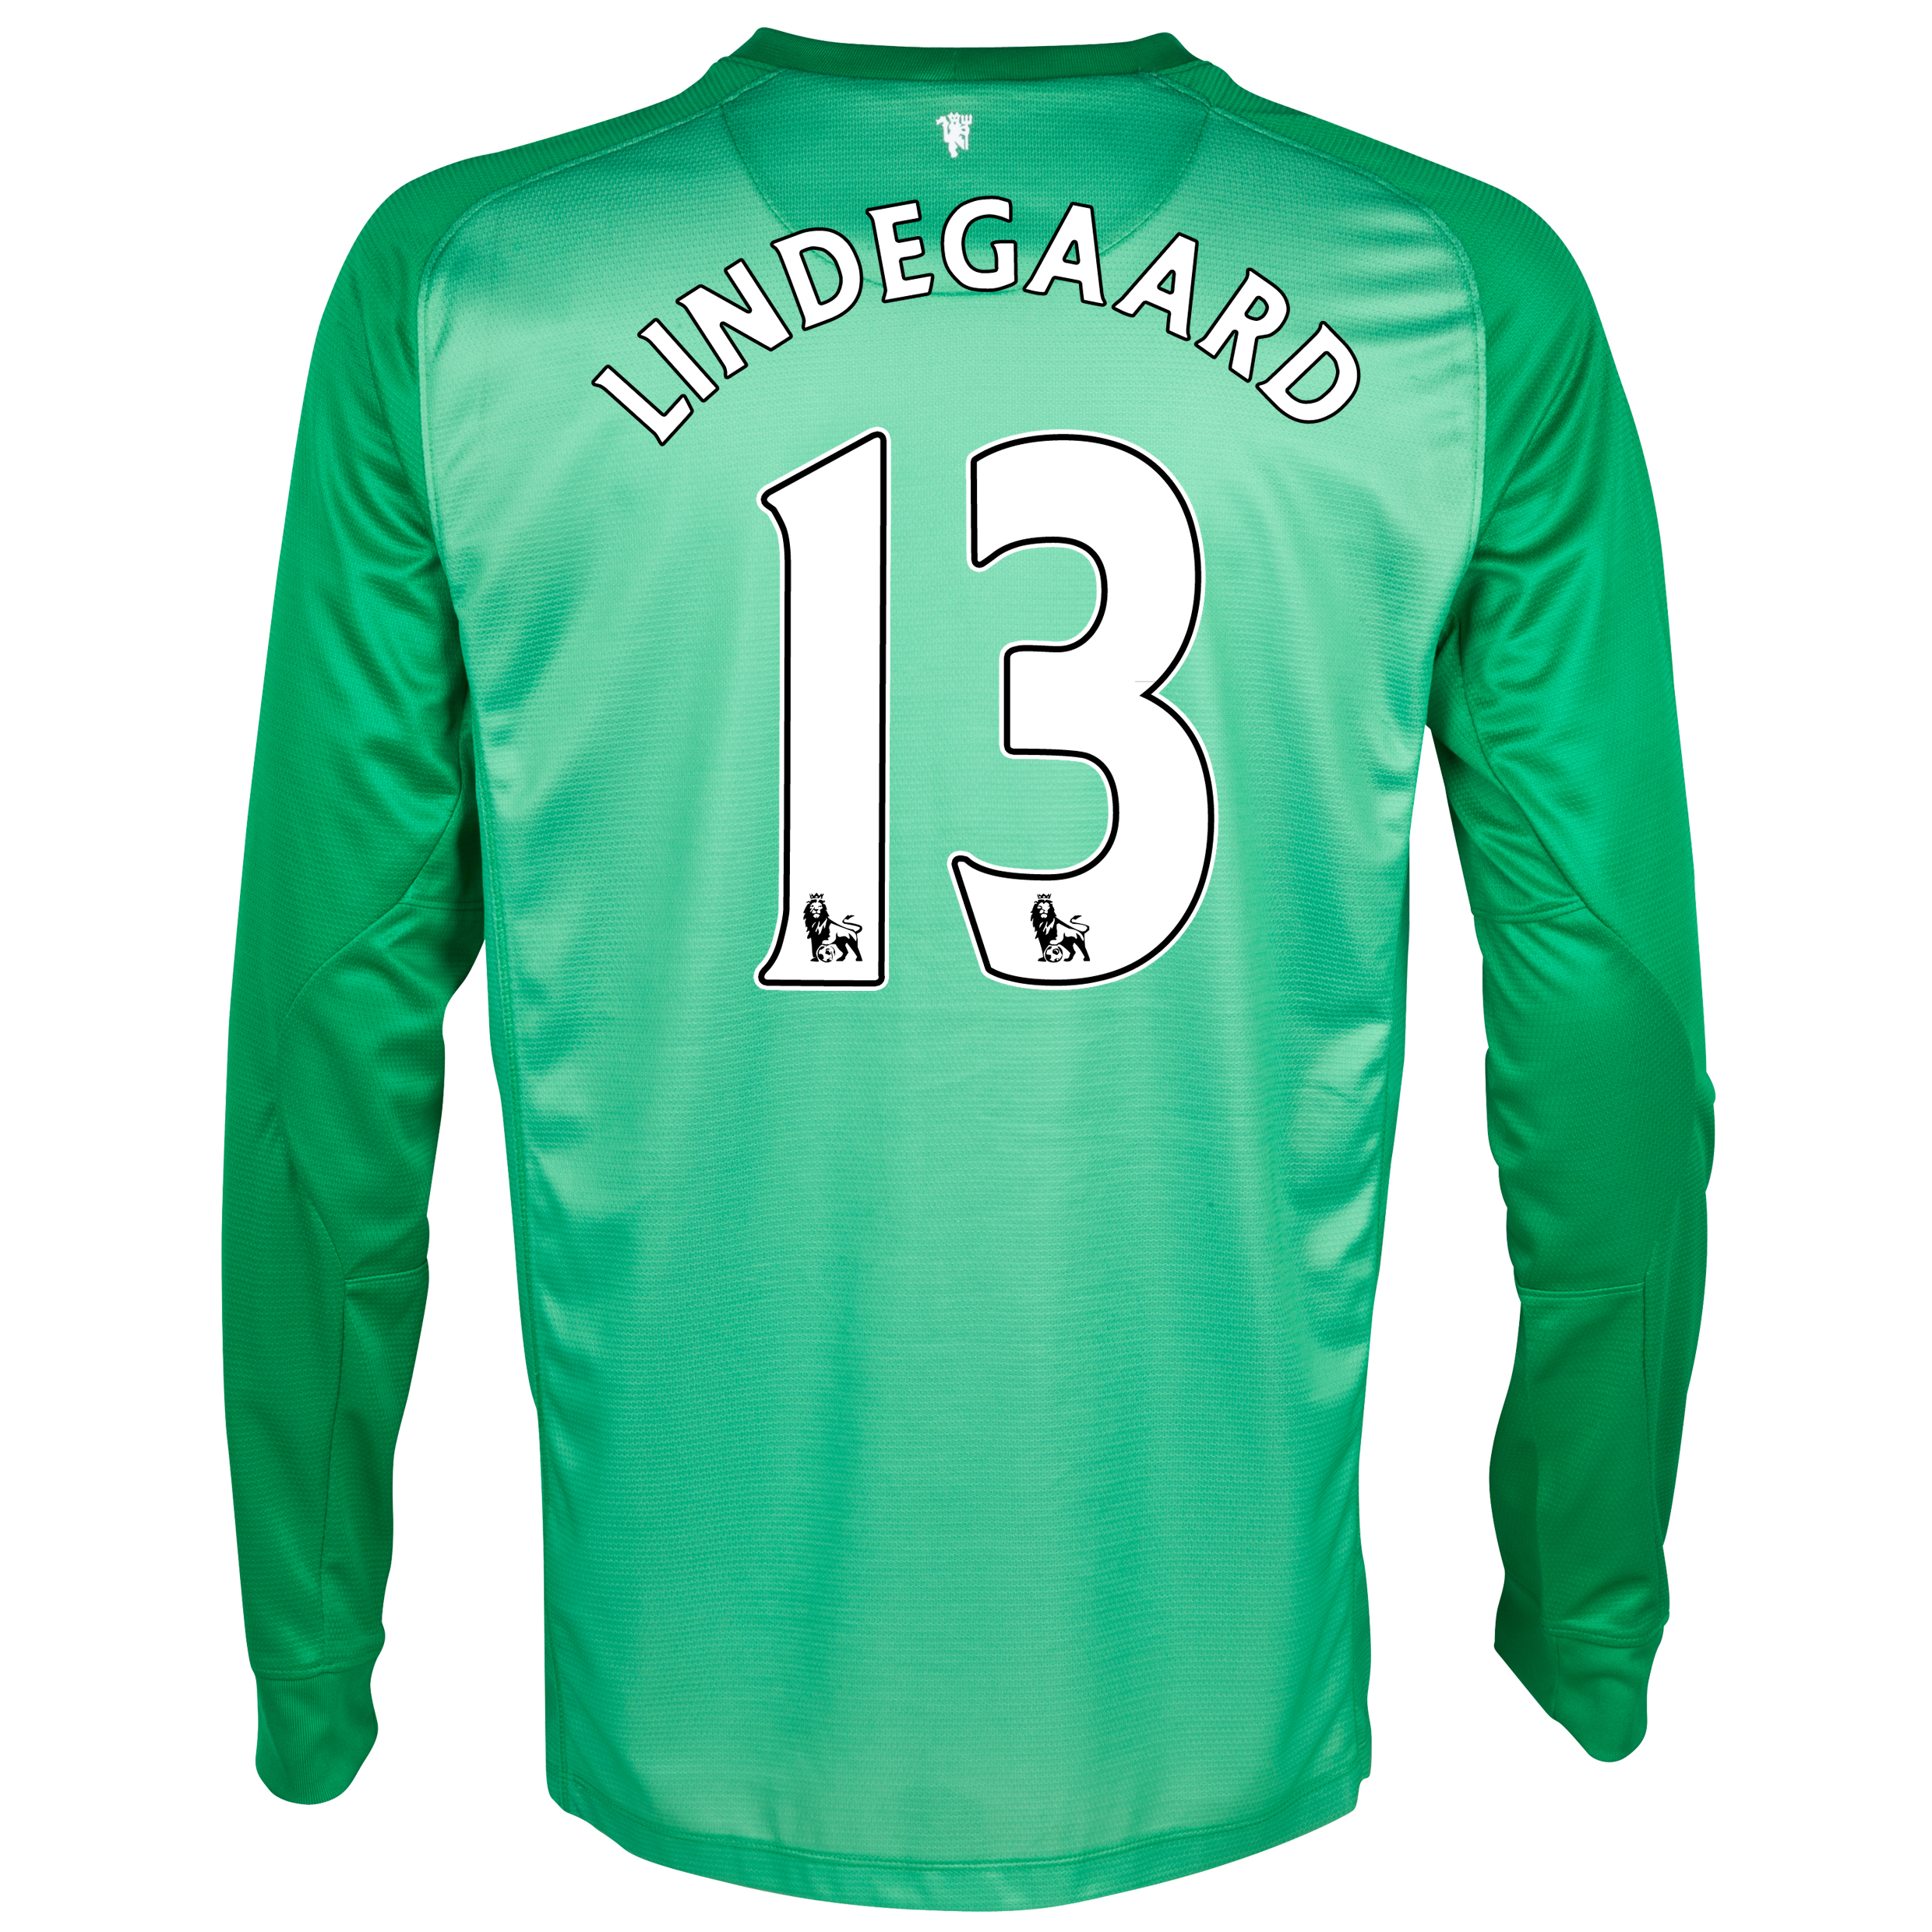 Manchester United Goalkeeper Shirt 2013/14 with Lindegaard 13 printing